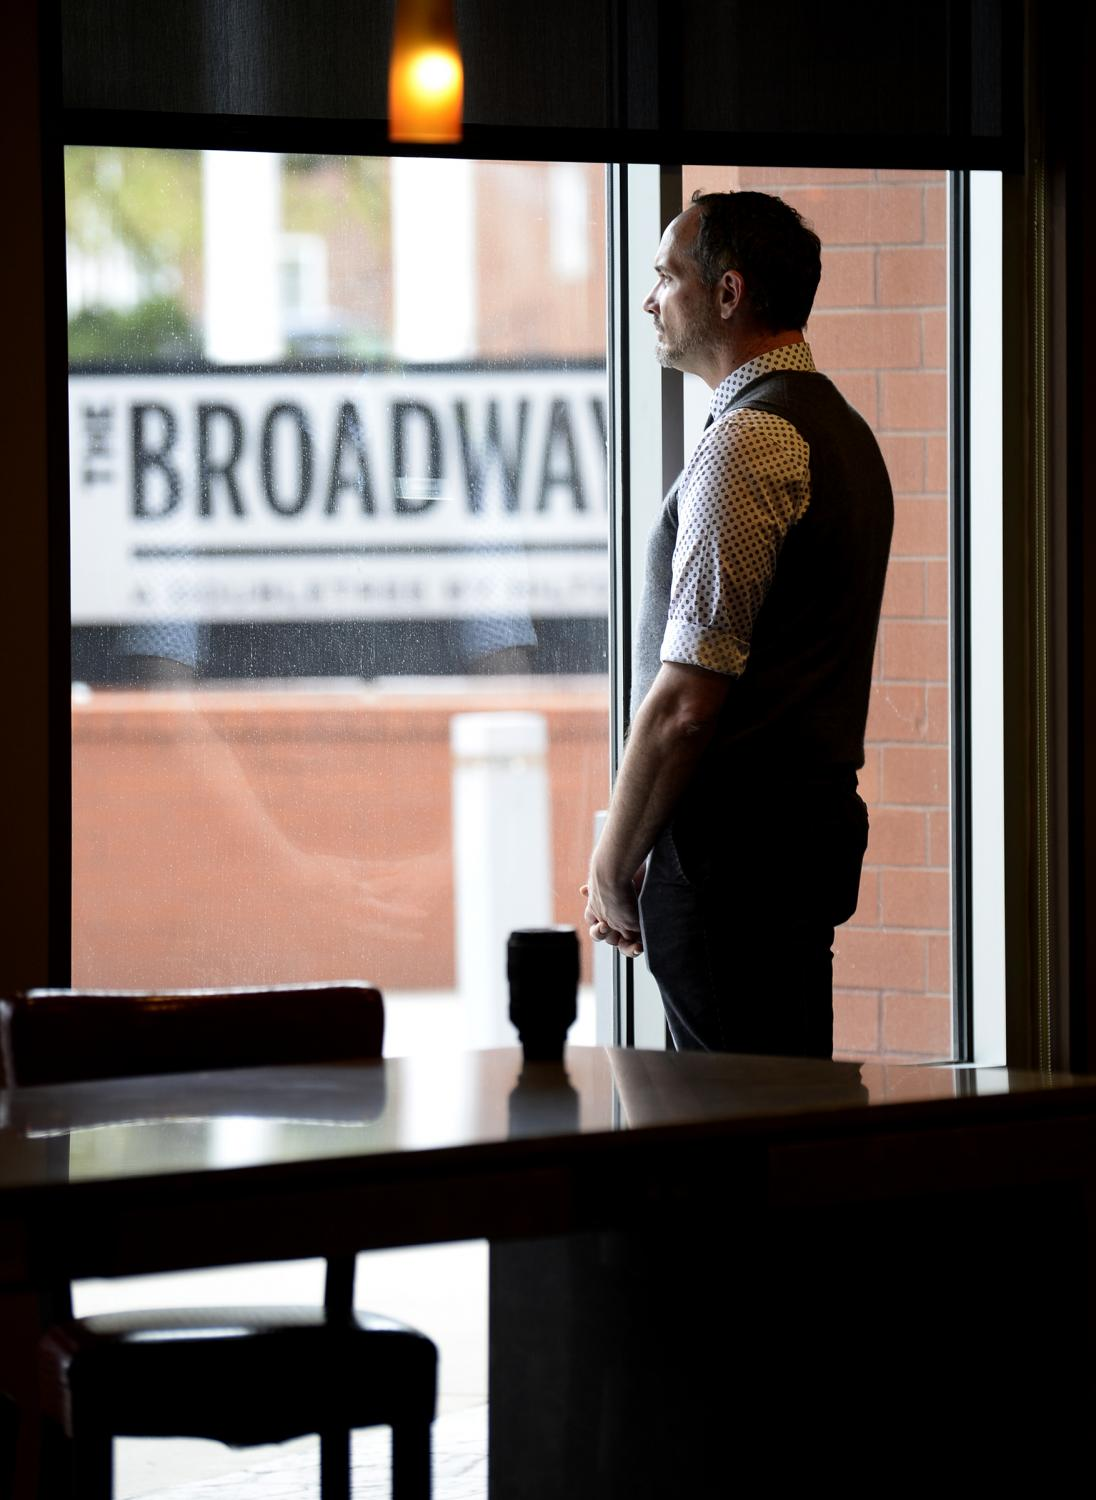 Jeremiah Huey looks out of the window on Wednesday, April 22, 2020, at Broadway Hotel, in Columbia. Huey is the director of nightlife at the hotel. Most of the hotels in town have seen a decrease on its occupancy since the state of Missouri issued the stay-at-home order, due to the COVID-19 situation.